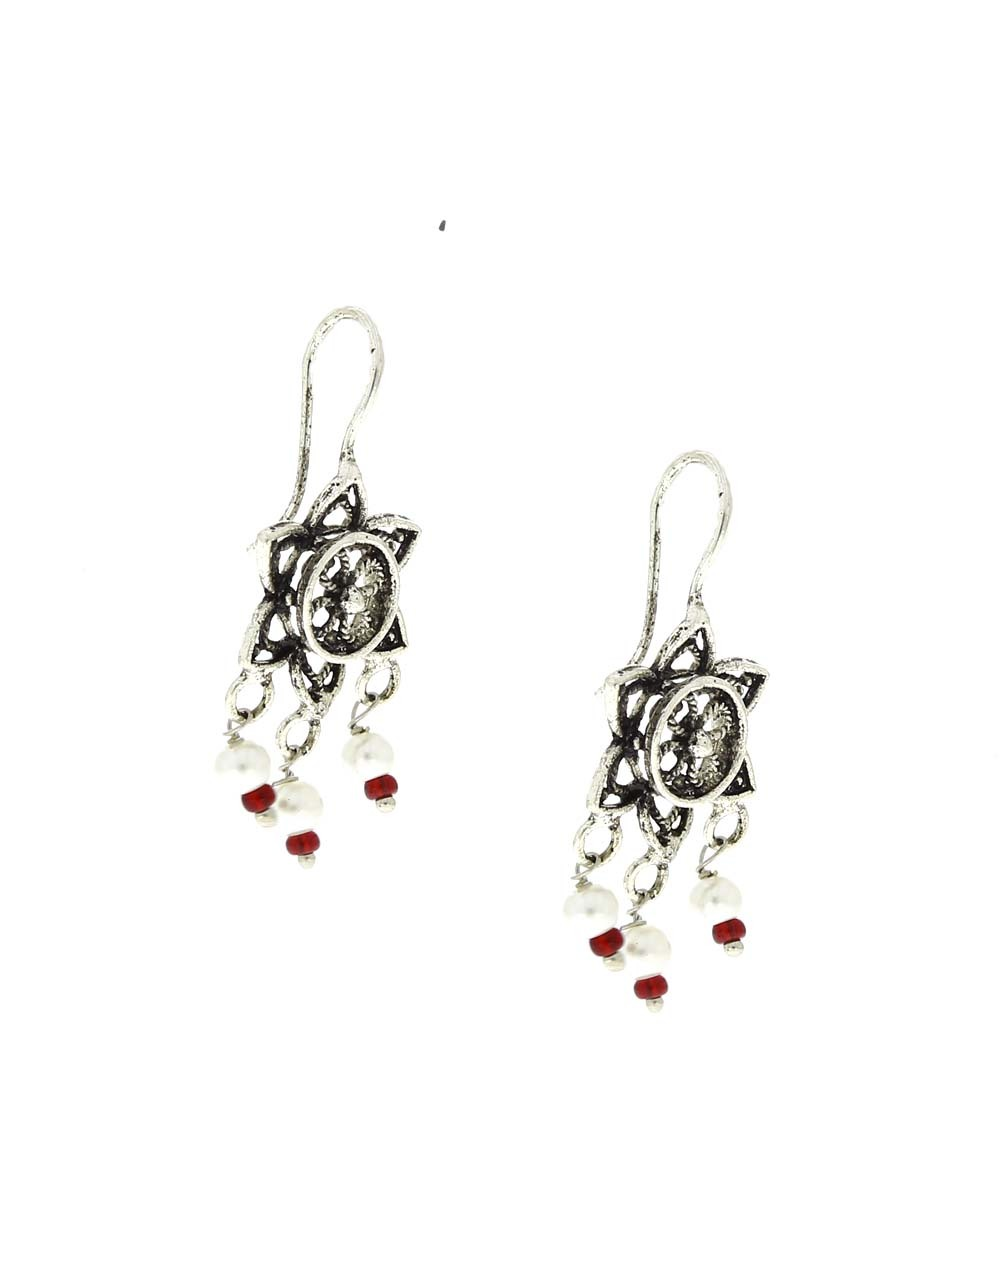 Floral Design Appealing Oxidised Bugadi Earrings for Women